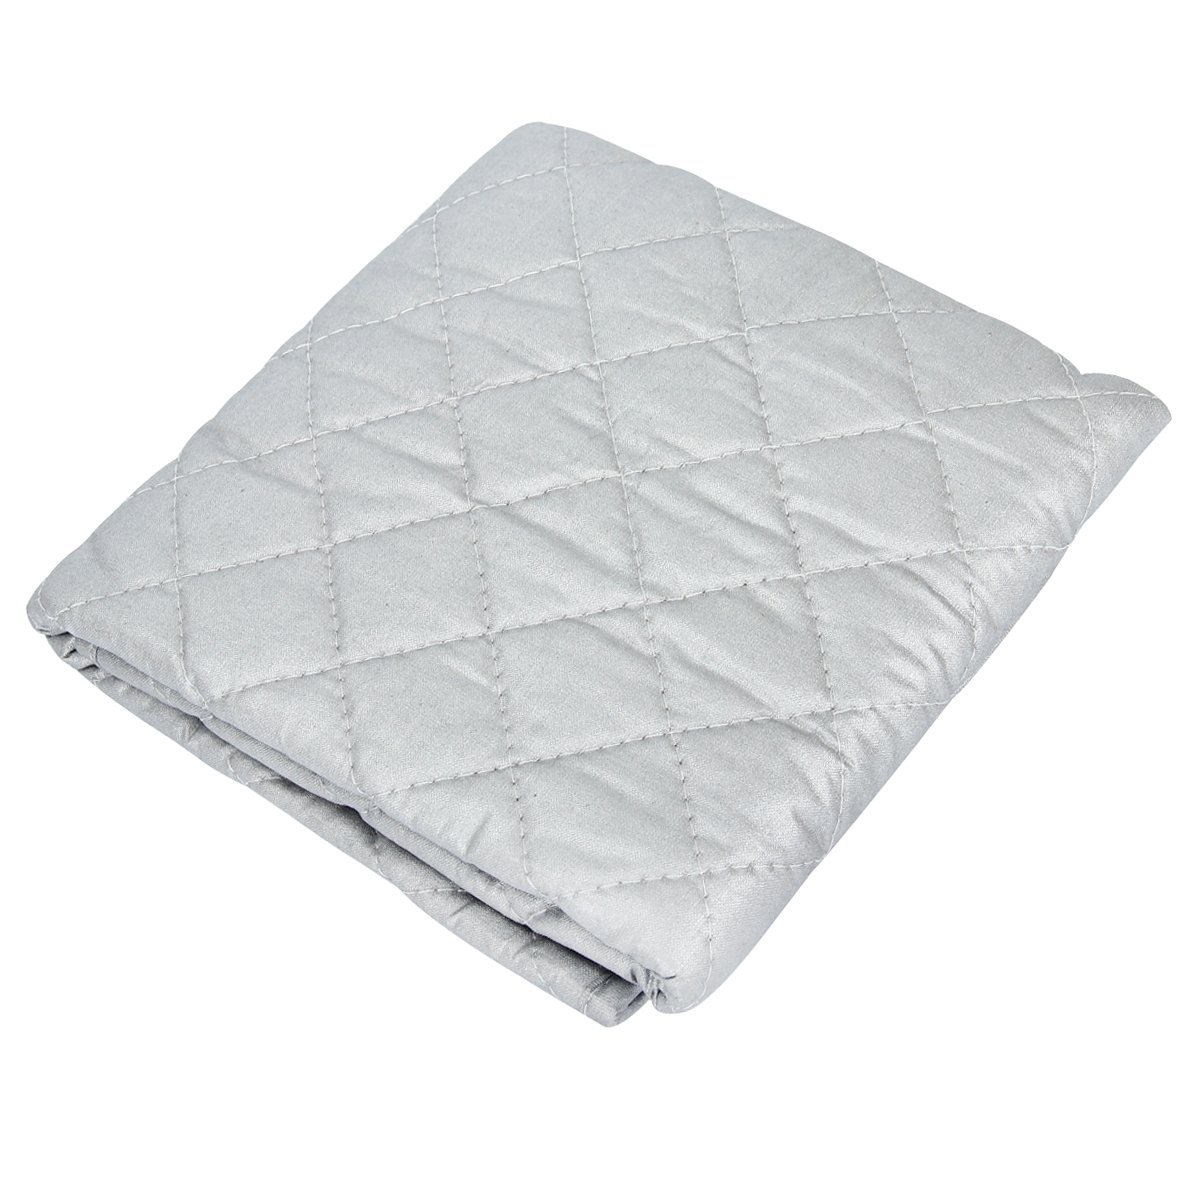 Kitchnexus Portable Ironing Blanket Heat Resistant Safe Iron Laundry Pad Mat for Washer Dryer 48 x 85cm/55 x 65cm/70 x 100cm